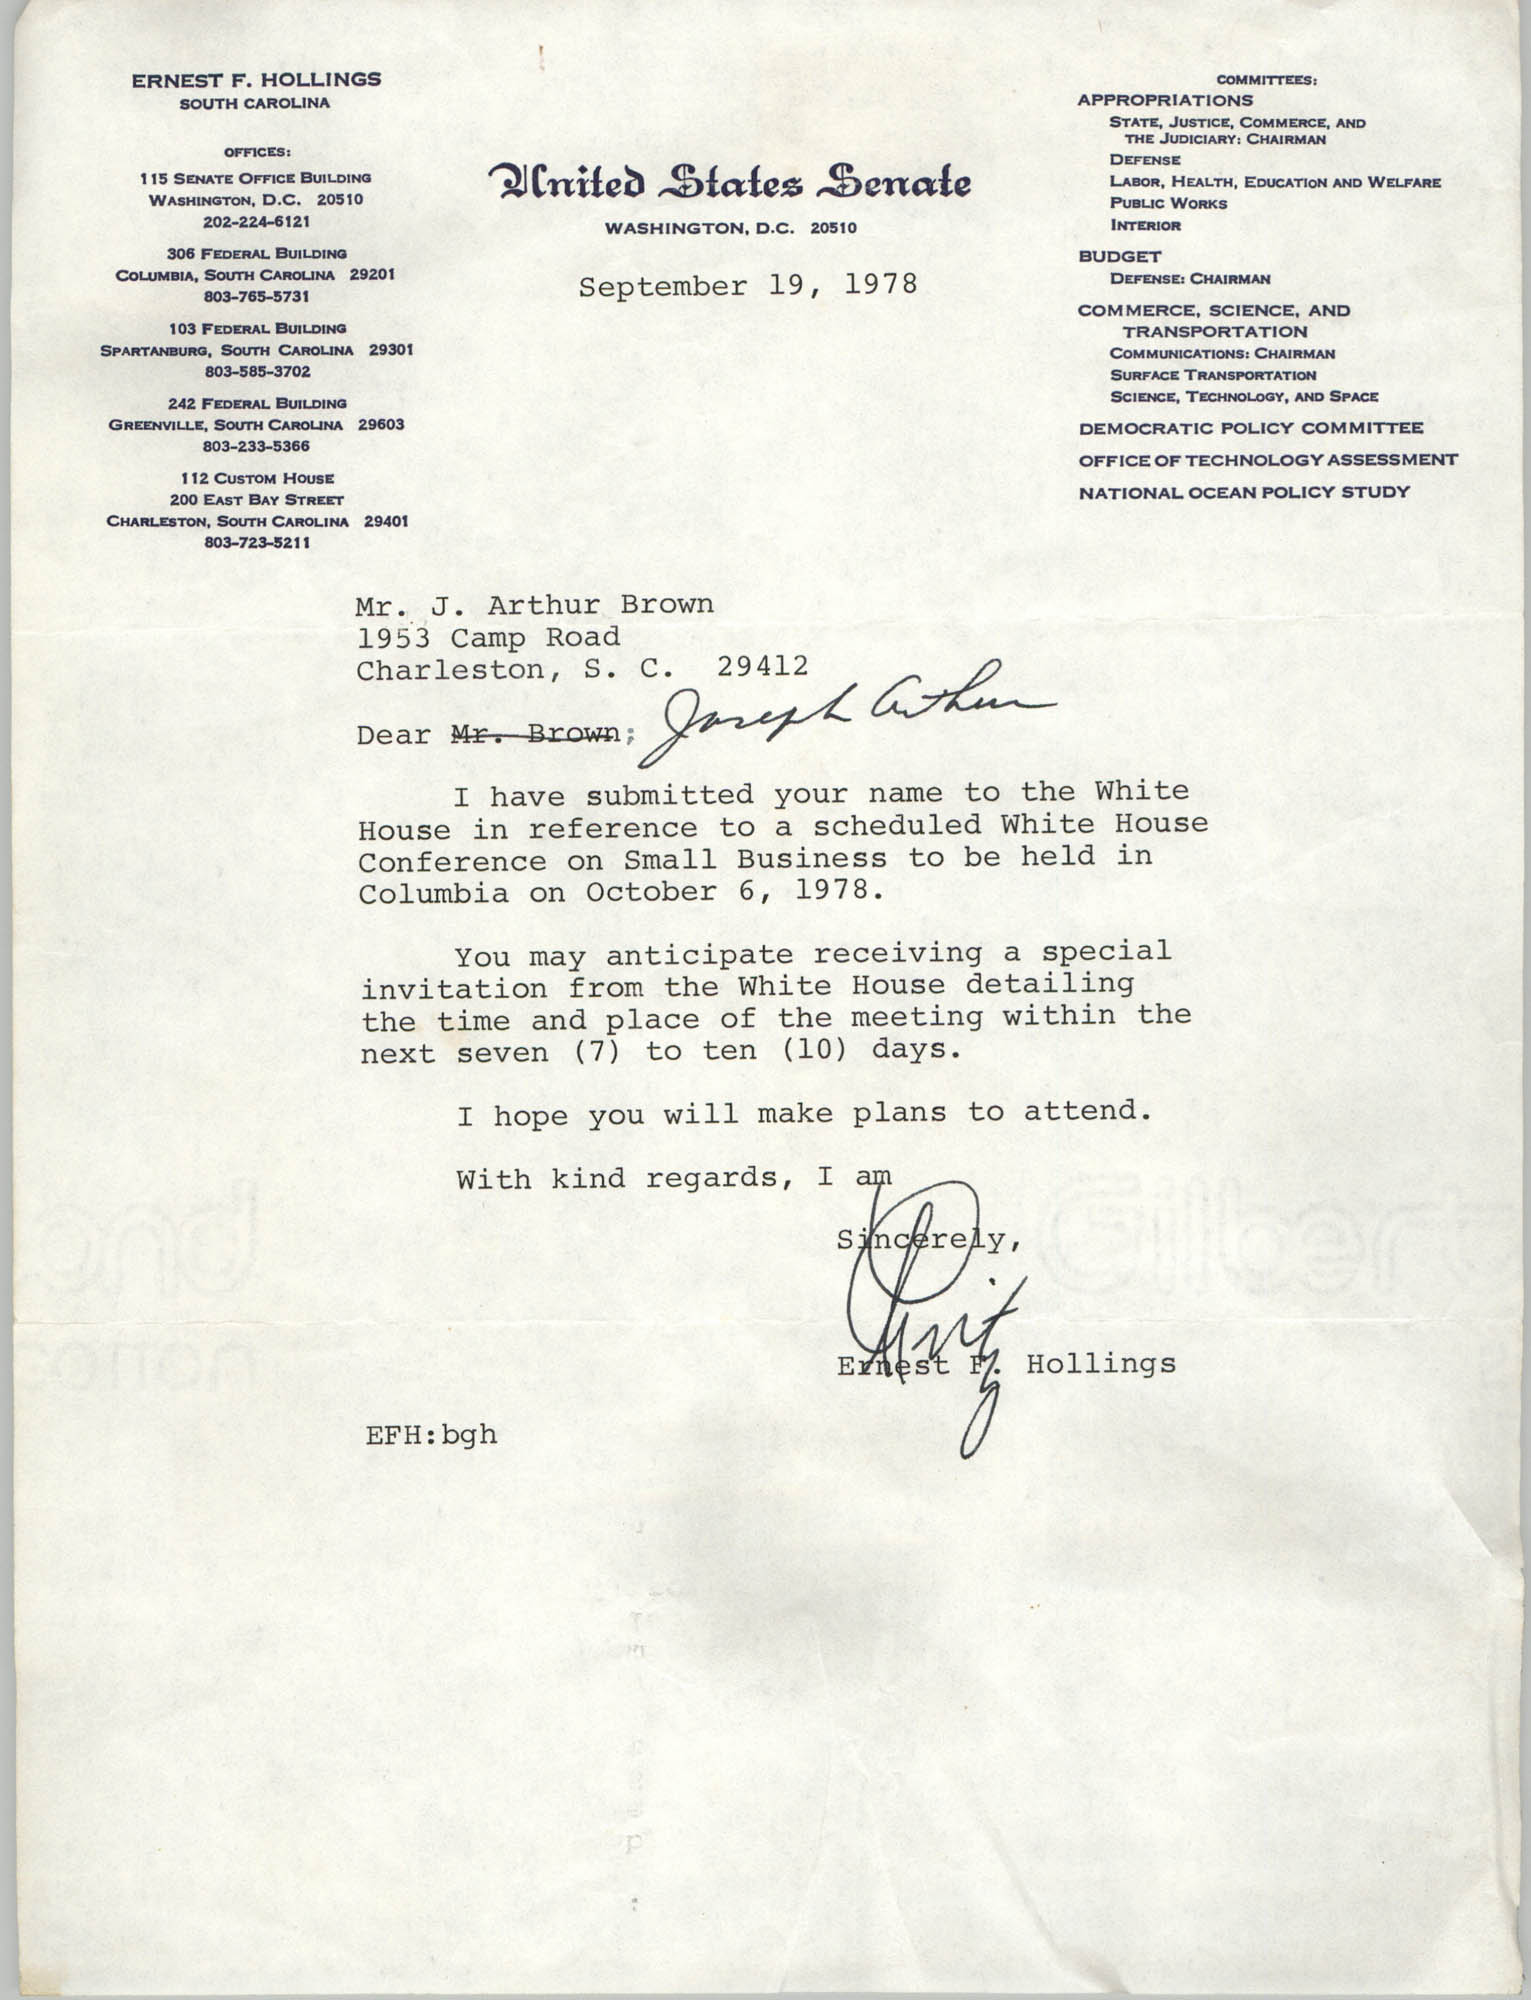 Letter from Ernest F. Hollings to J. Arthur Brown, September 19, 1978